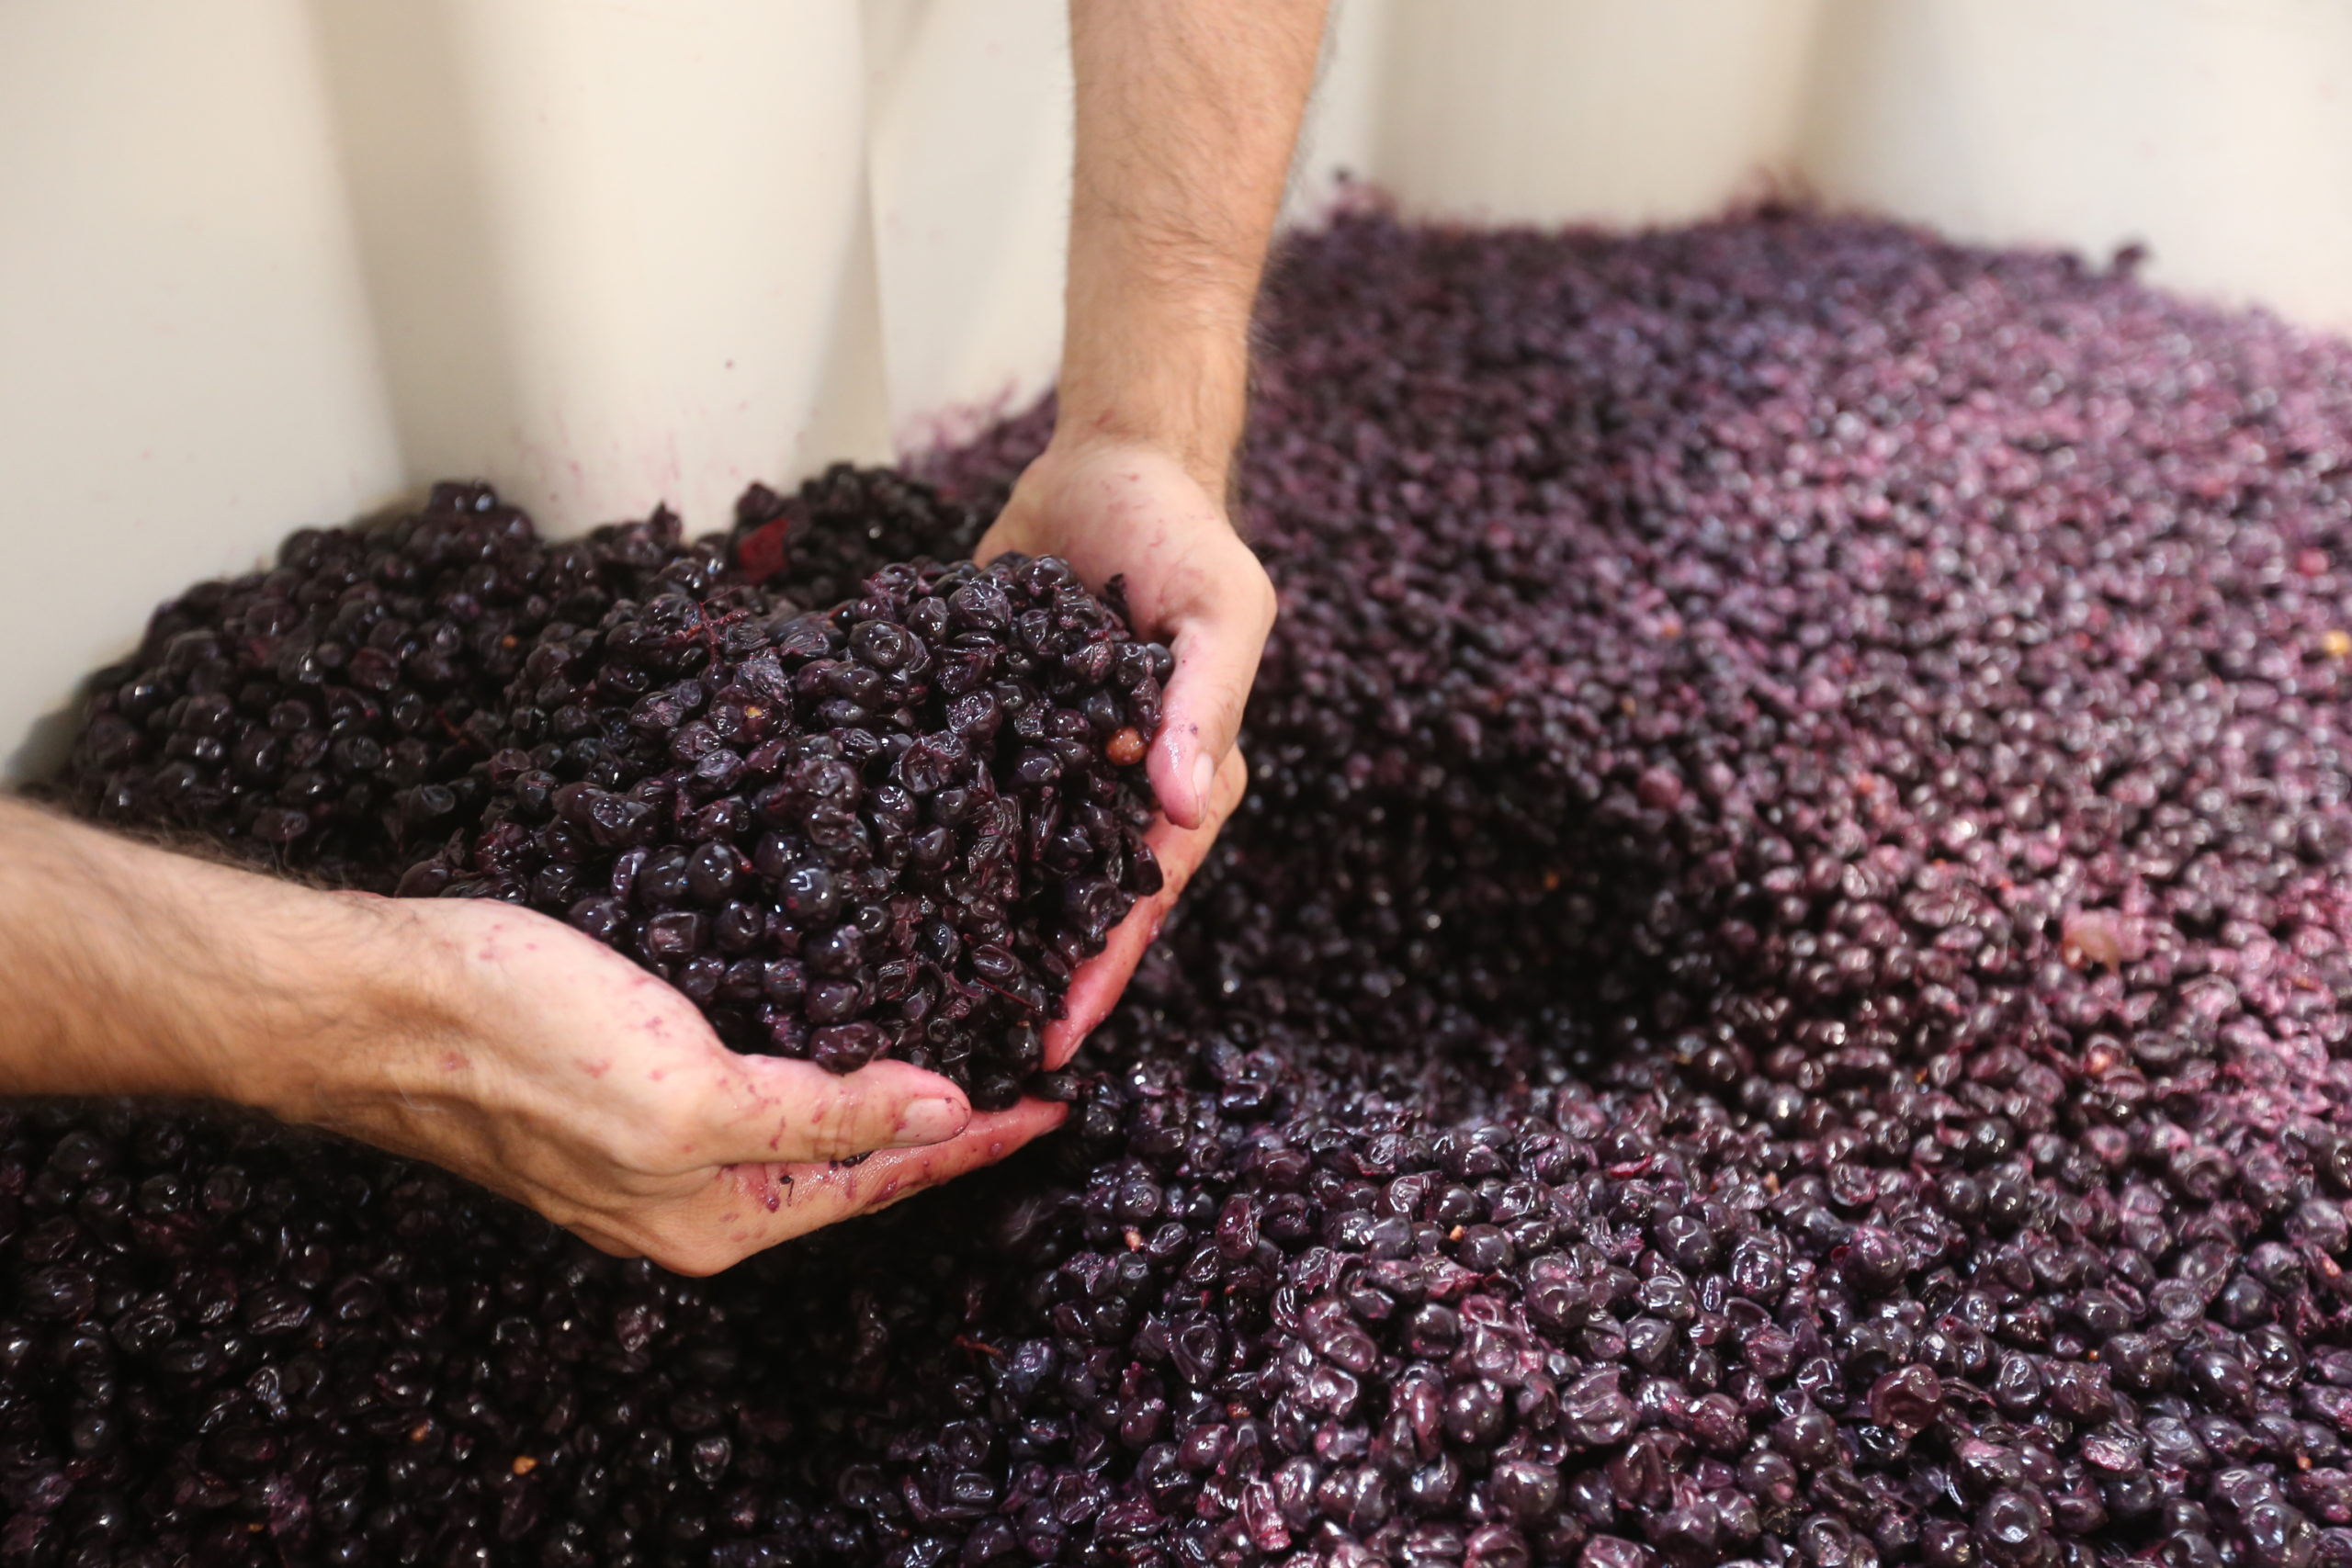 Hands in a vat of crushed red grapes.